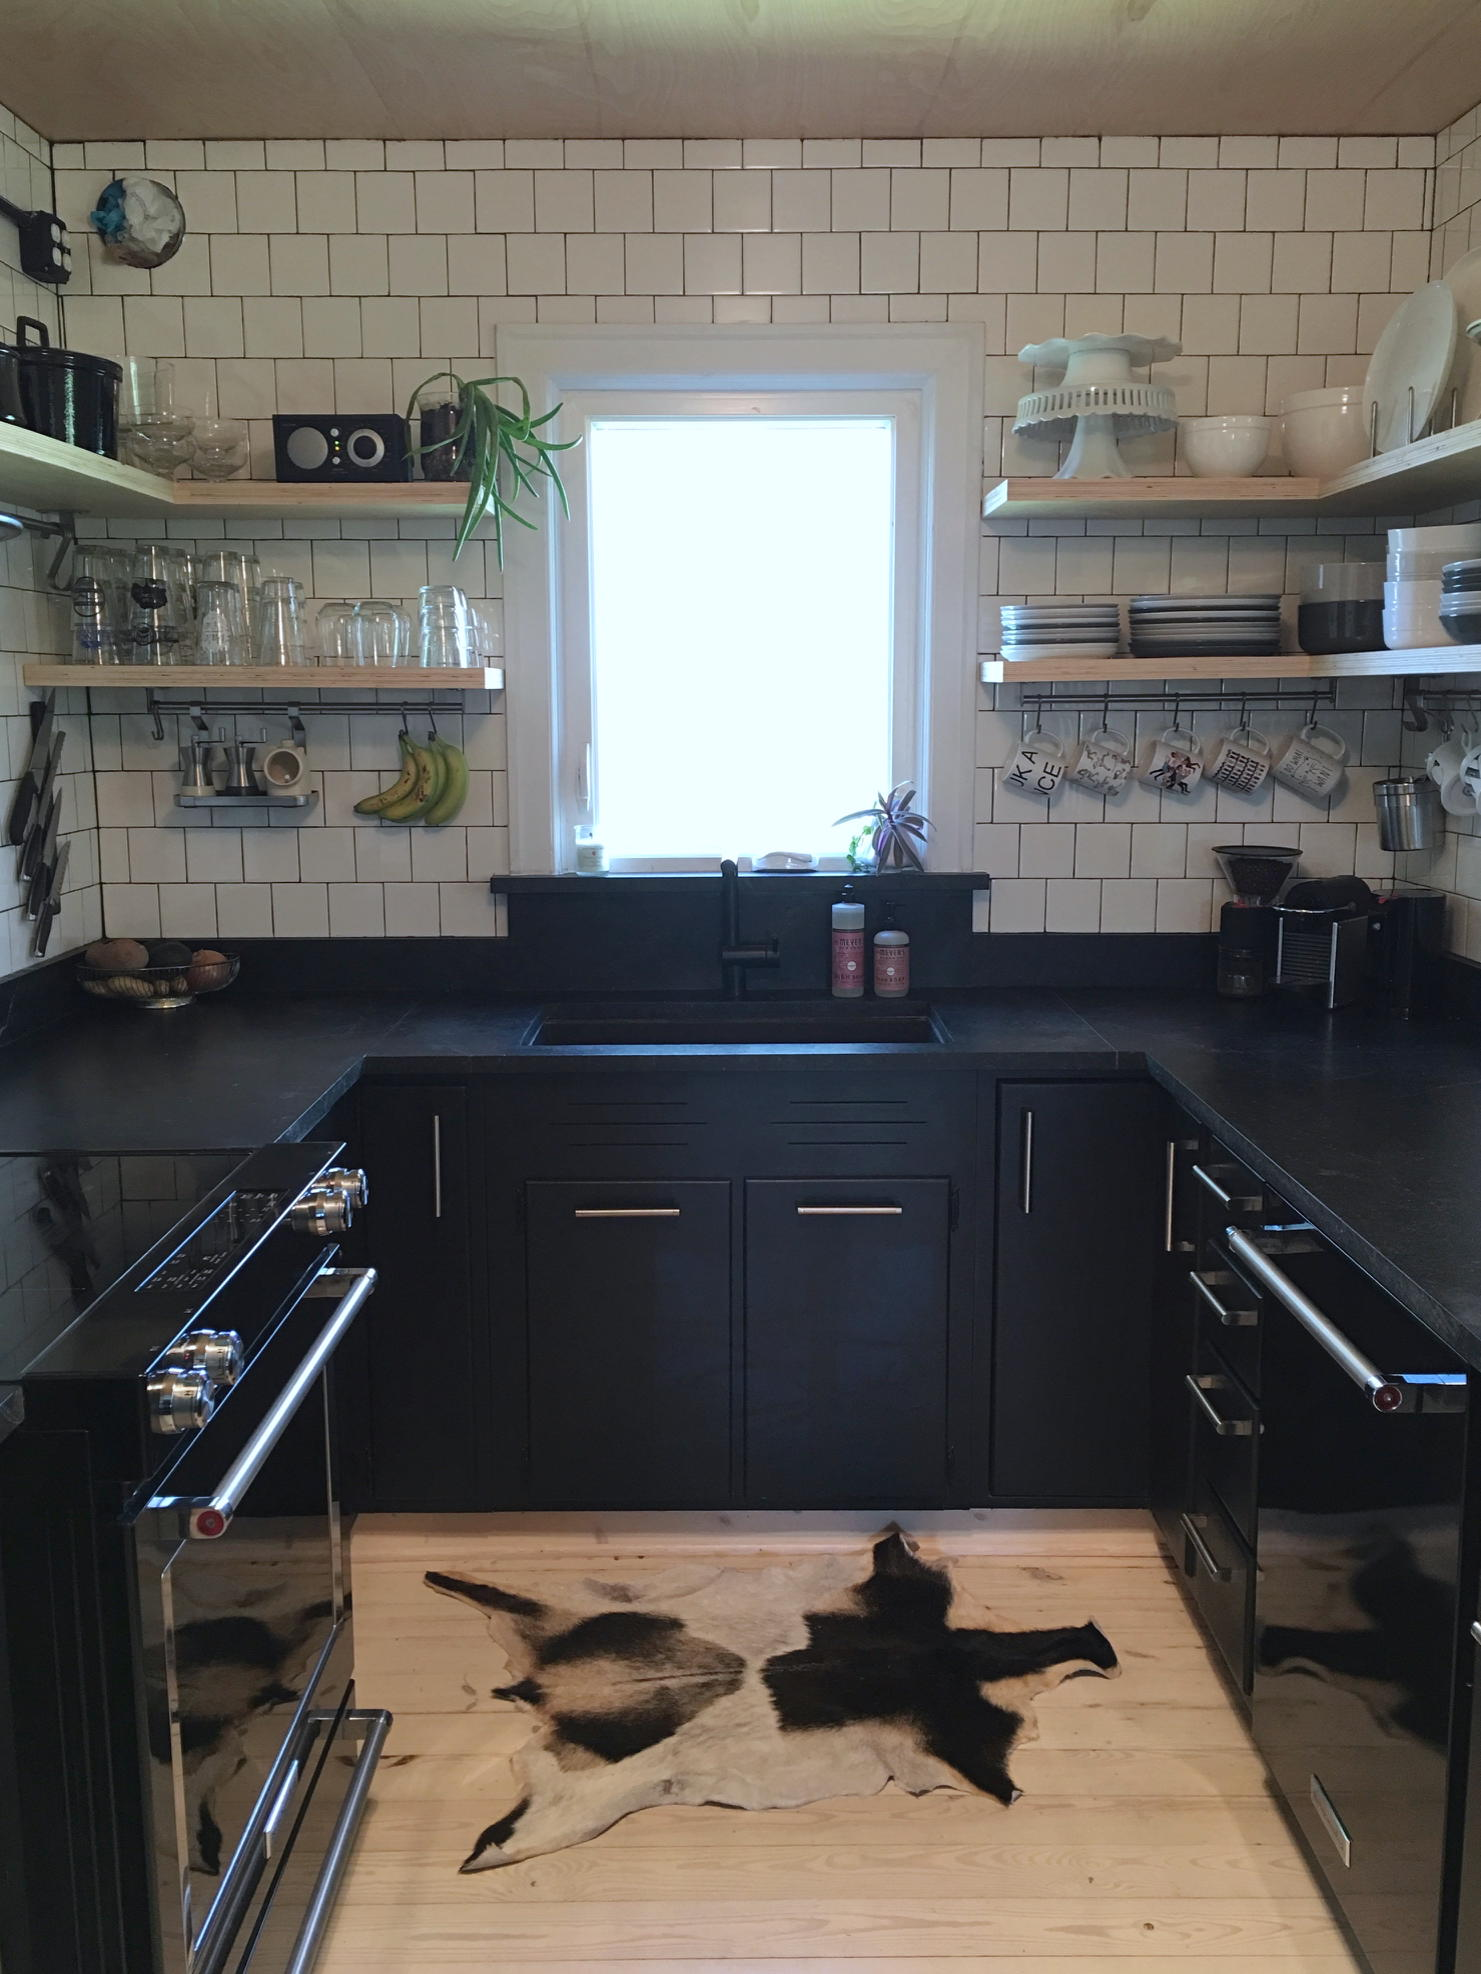 DIY Soapstone Counters? Yes, They Did. See The Kitchen.